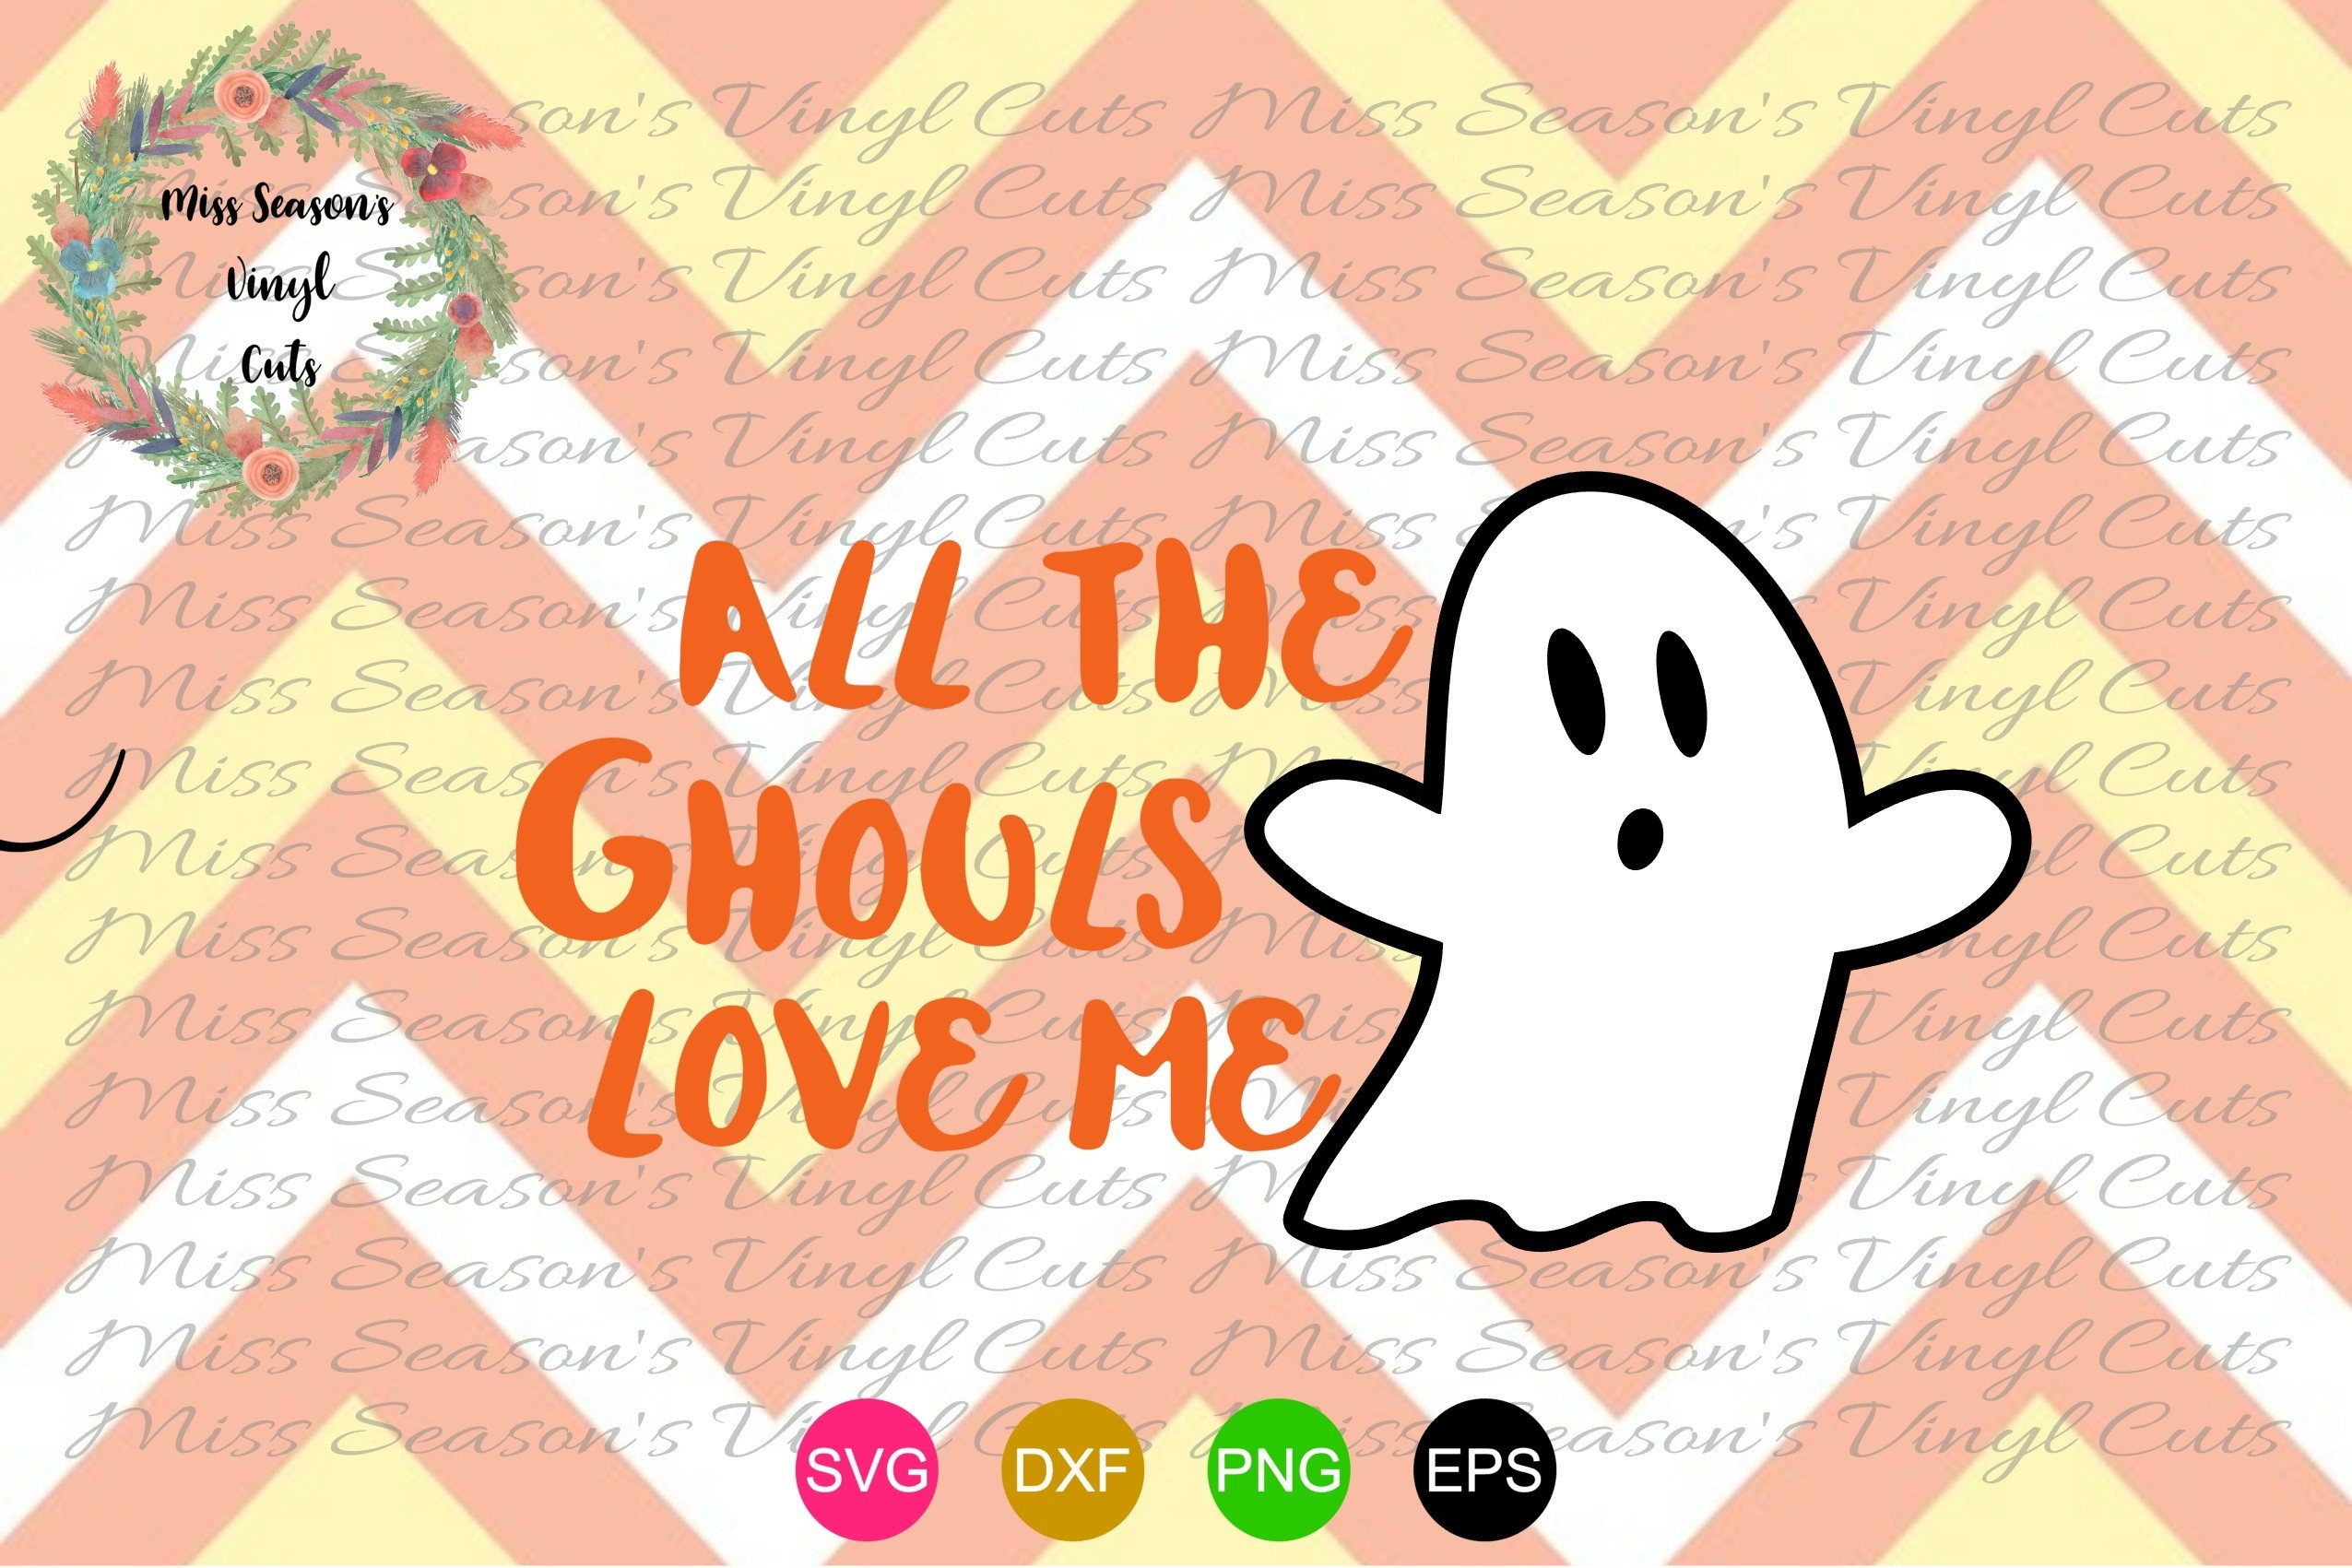 All The Ghouls Love Me Svg Dxf Eps Png 316099 Cut Files Design Bundles